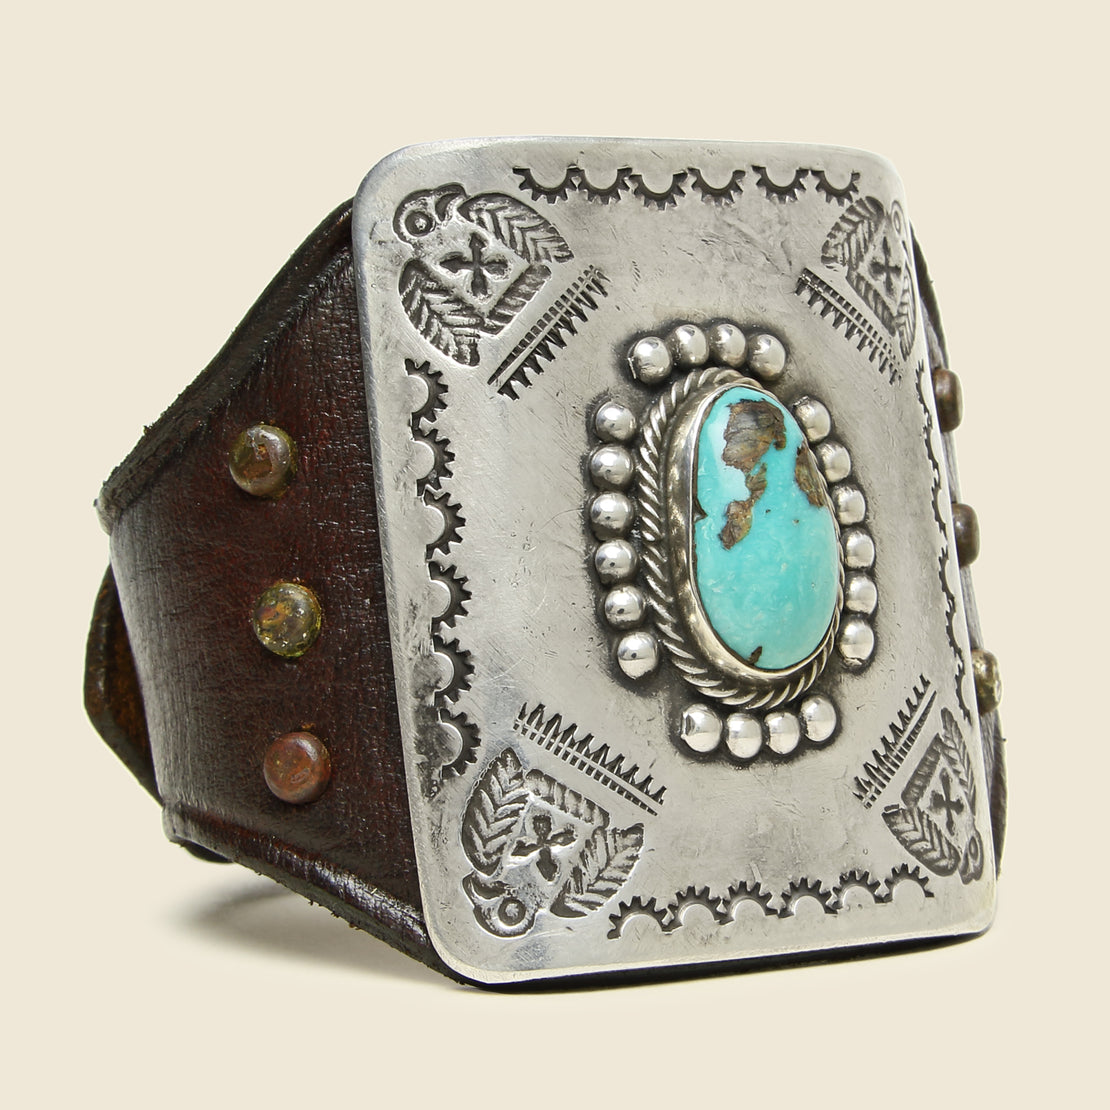 Smith Bros. Trading Co. Thunderbird Stamped Ketoh - Leather/Sterling/Turquoise